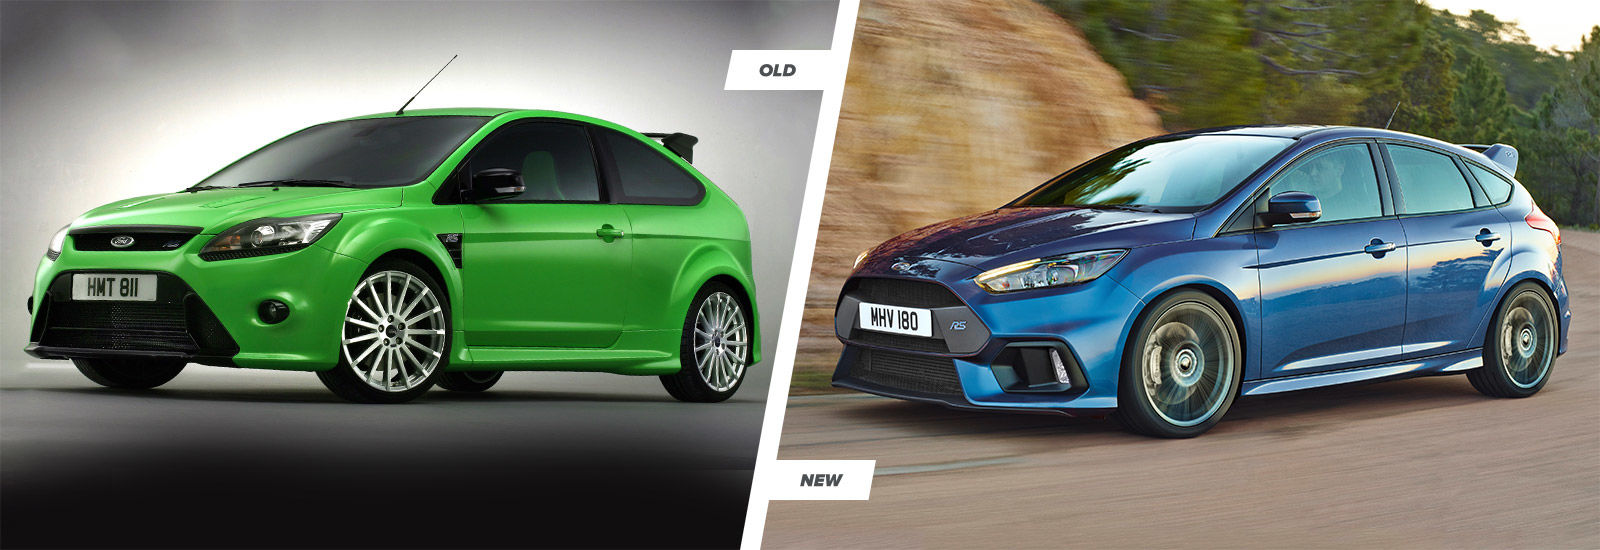 Ford Focus RS old vs new u2013 styling & Ford Focus RS: old vs new hot hatches compared | carwow markmcfarlin.com